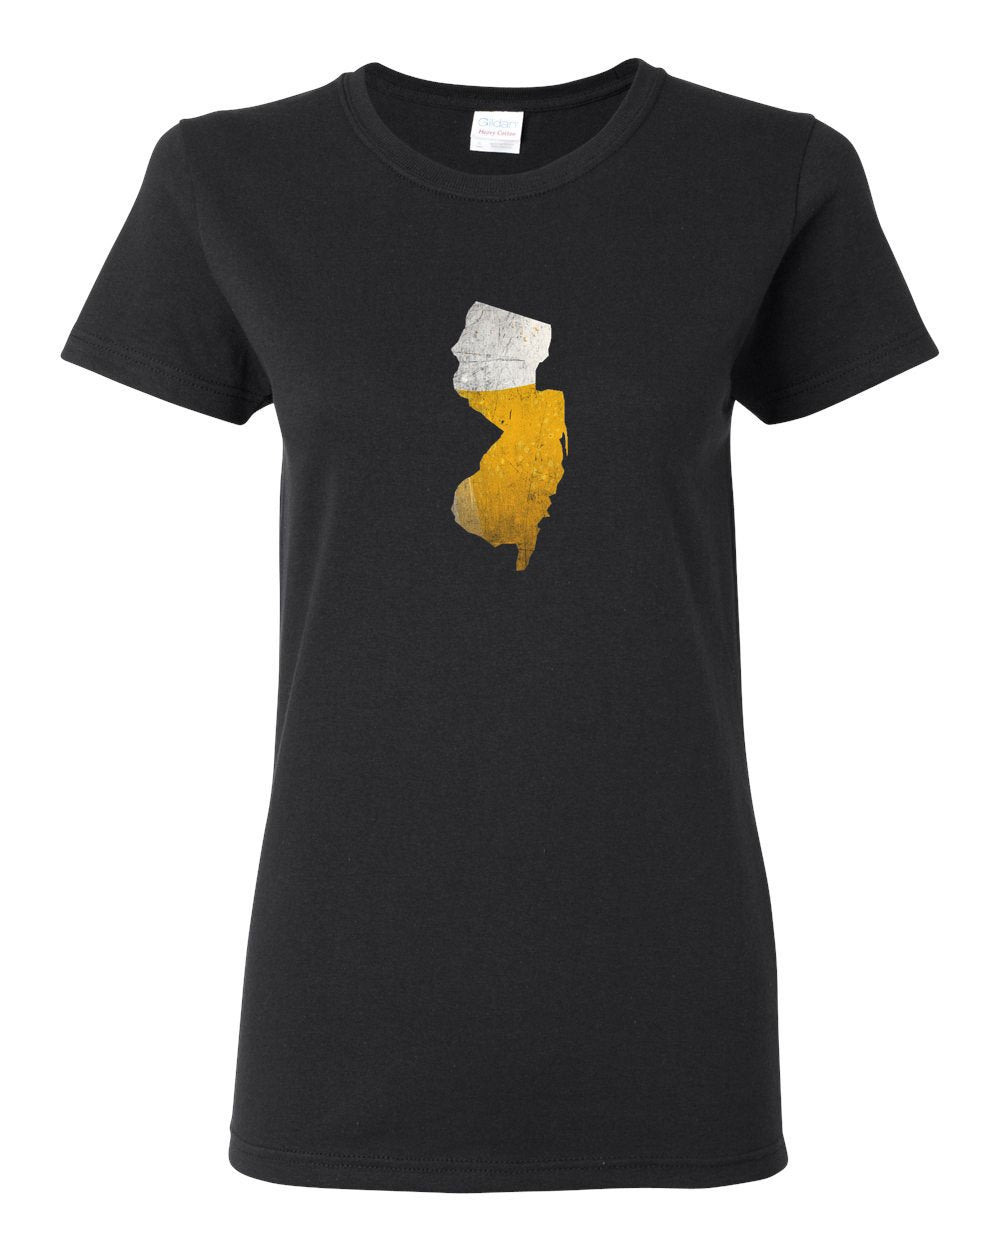 NJ Beer LADIES Missy-Fit T-Shirt